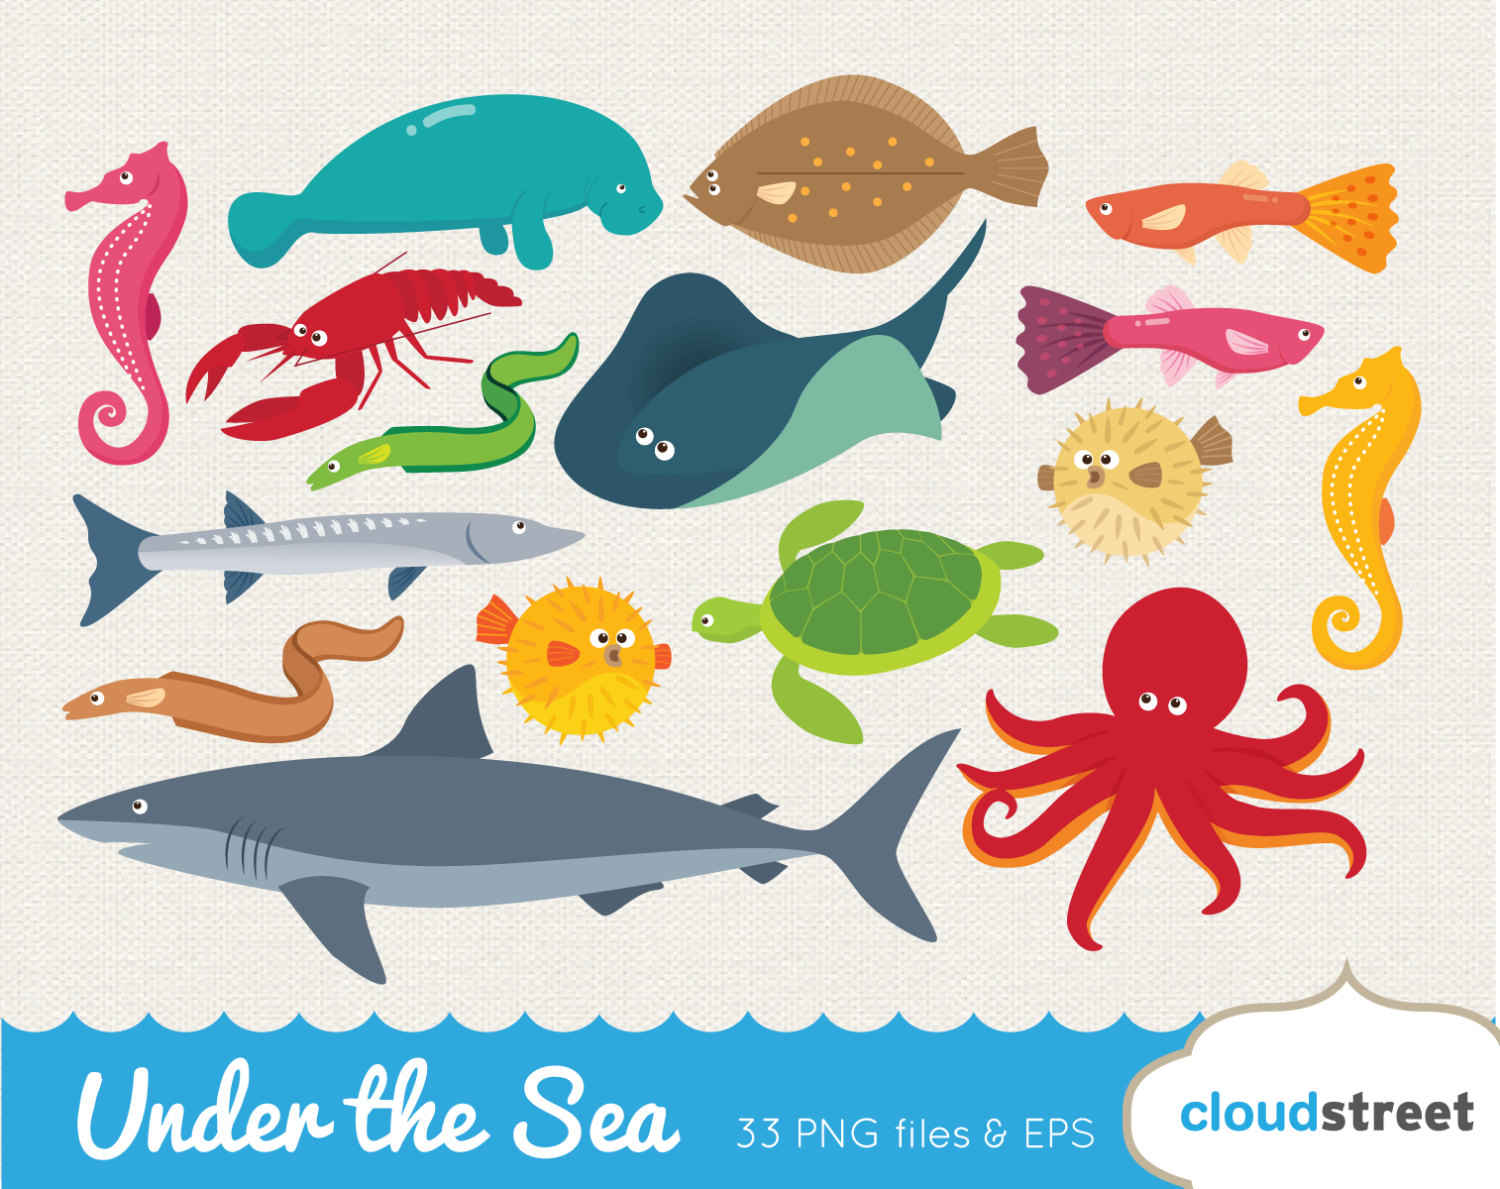 buy 2 get 1 free vector under the sea clip art / sea creatures clipart puffer fish shark octopus manatee turtle stingray / commercial use ok